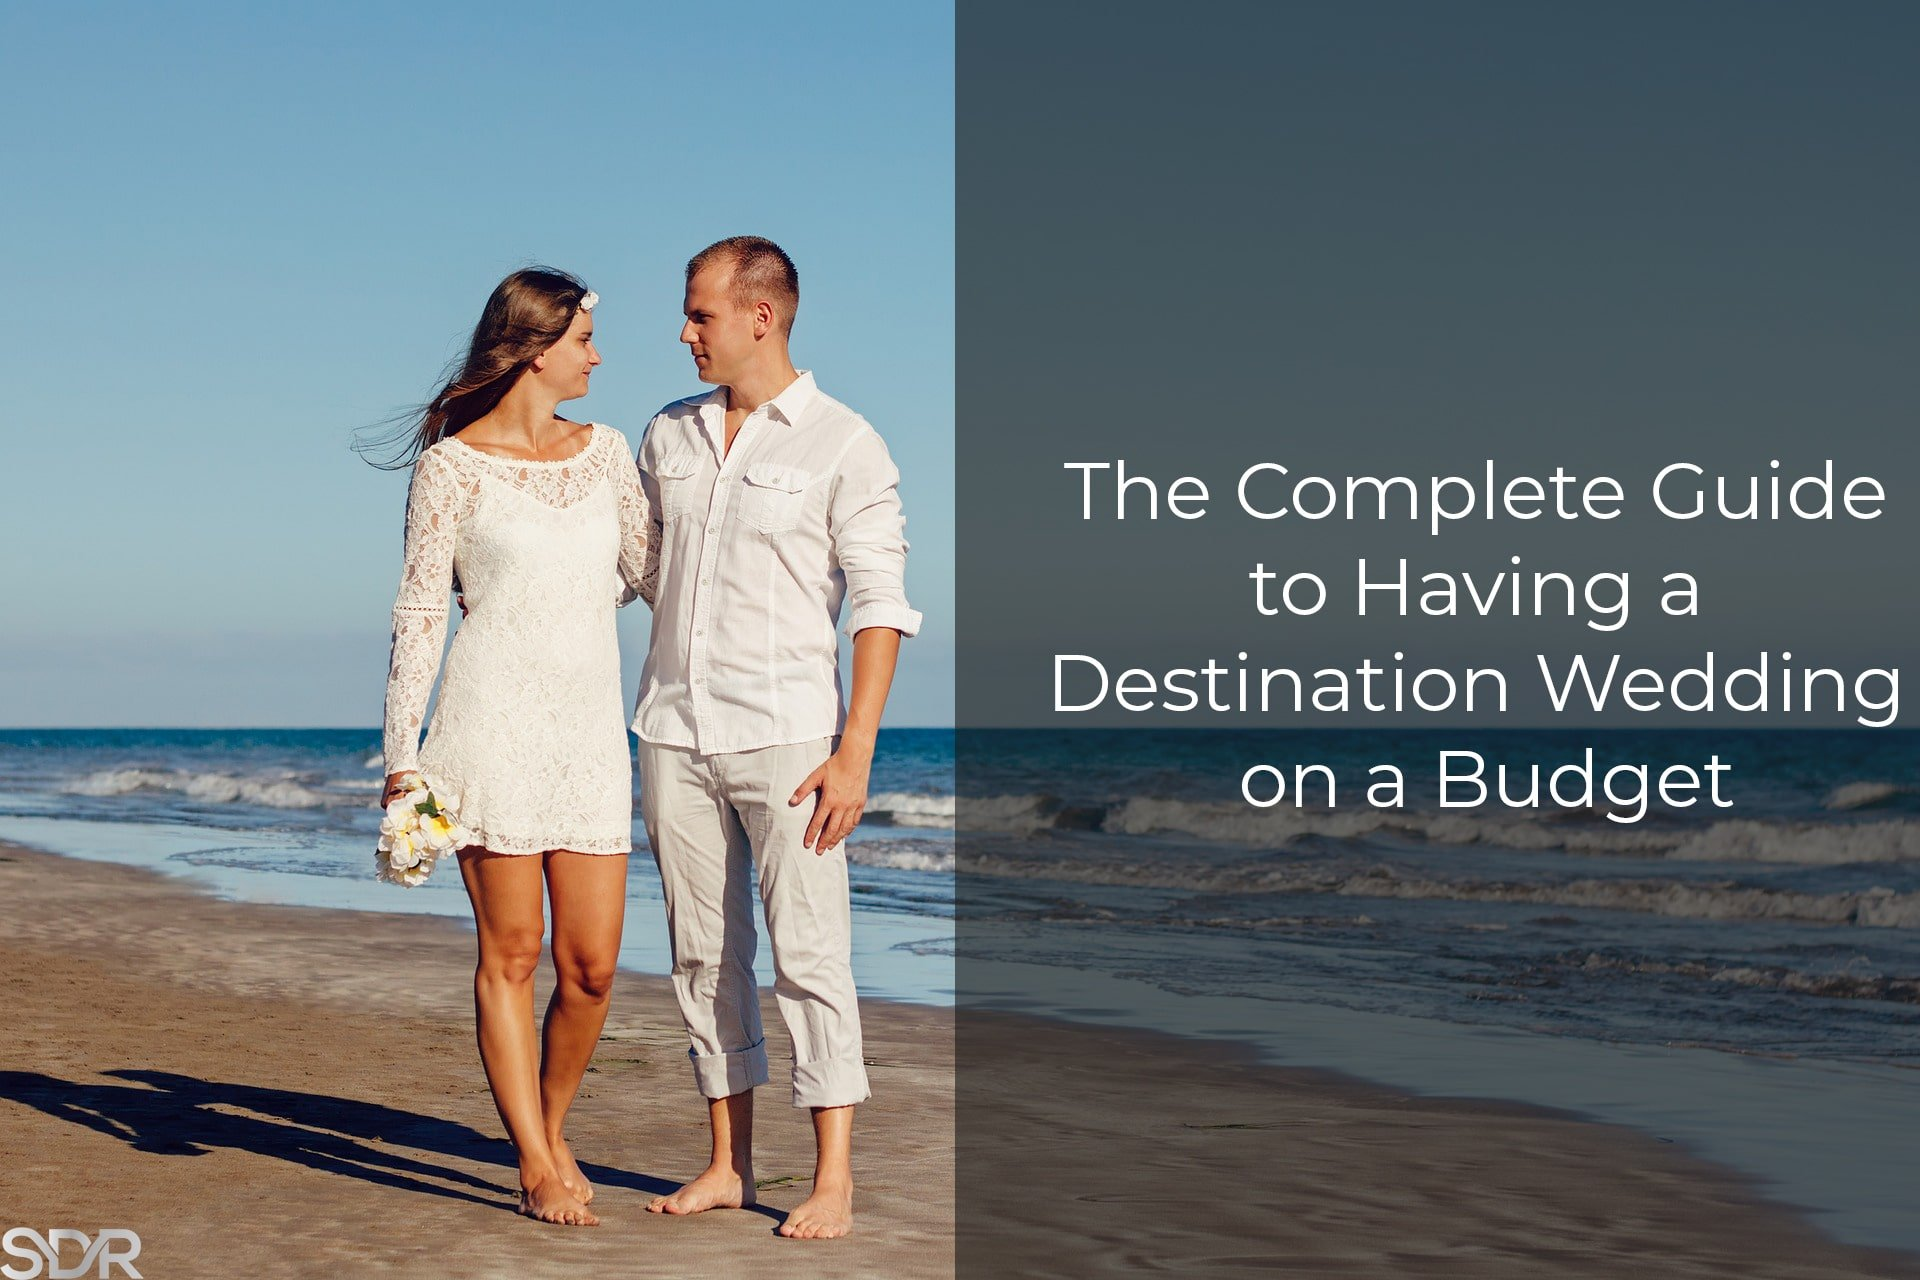 The Complete Guide to Having a Destination Wedding on a Budget